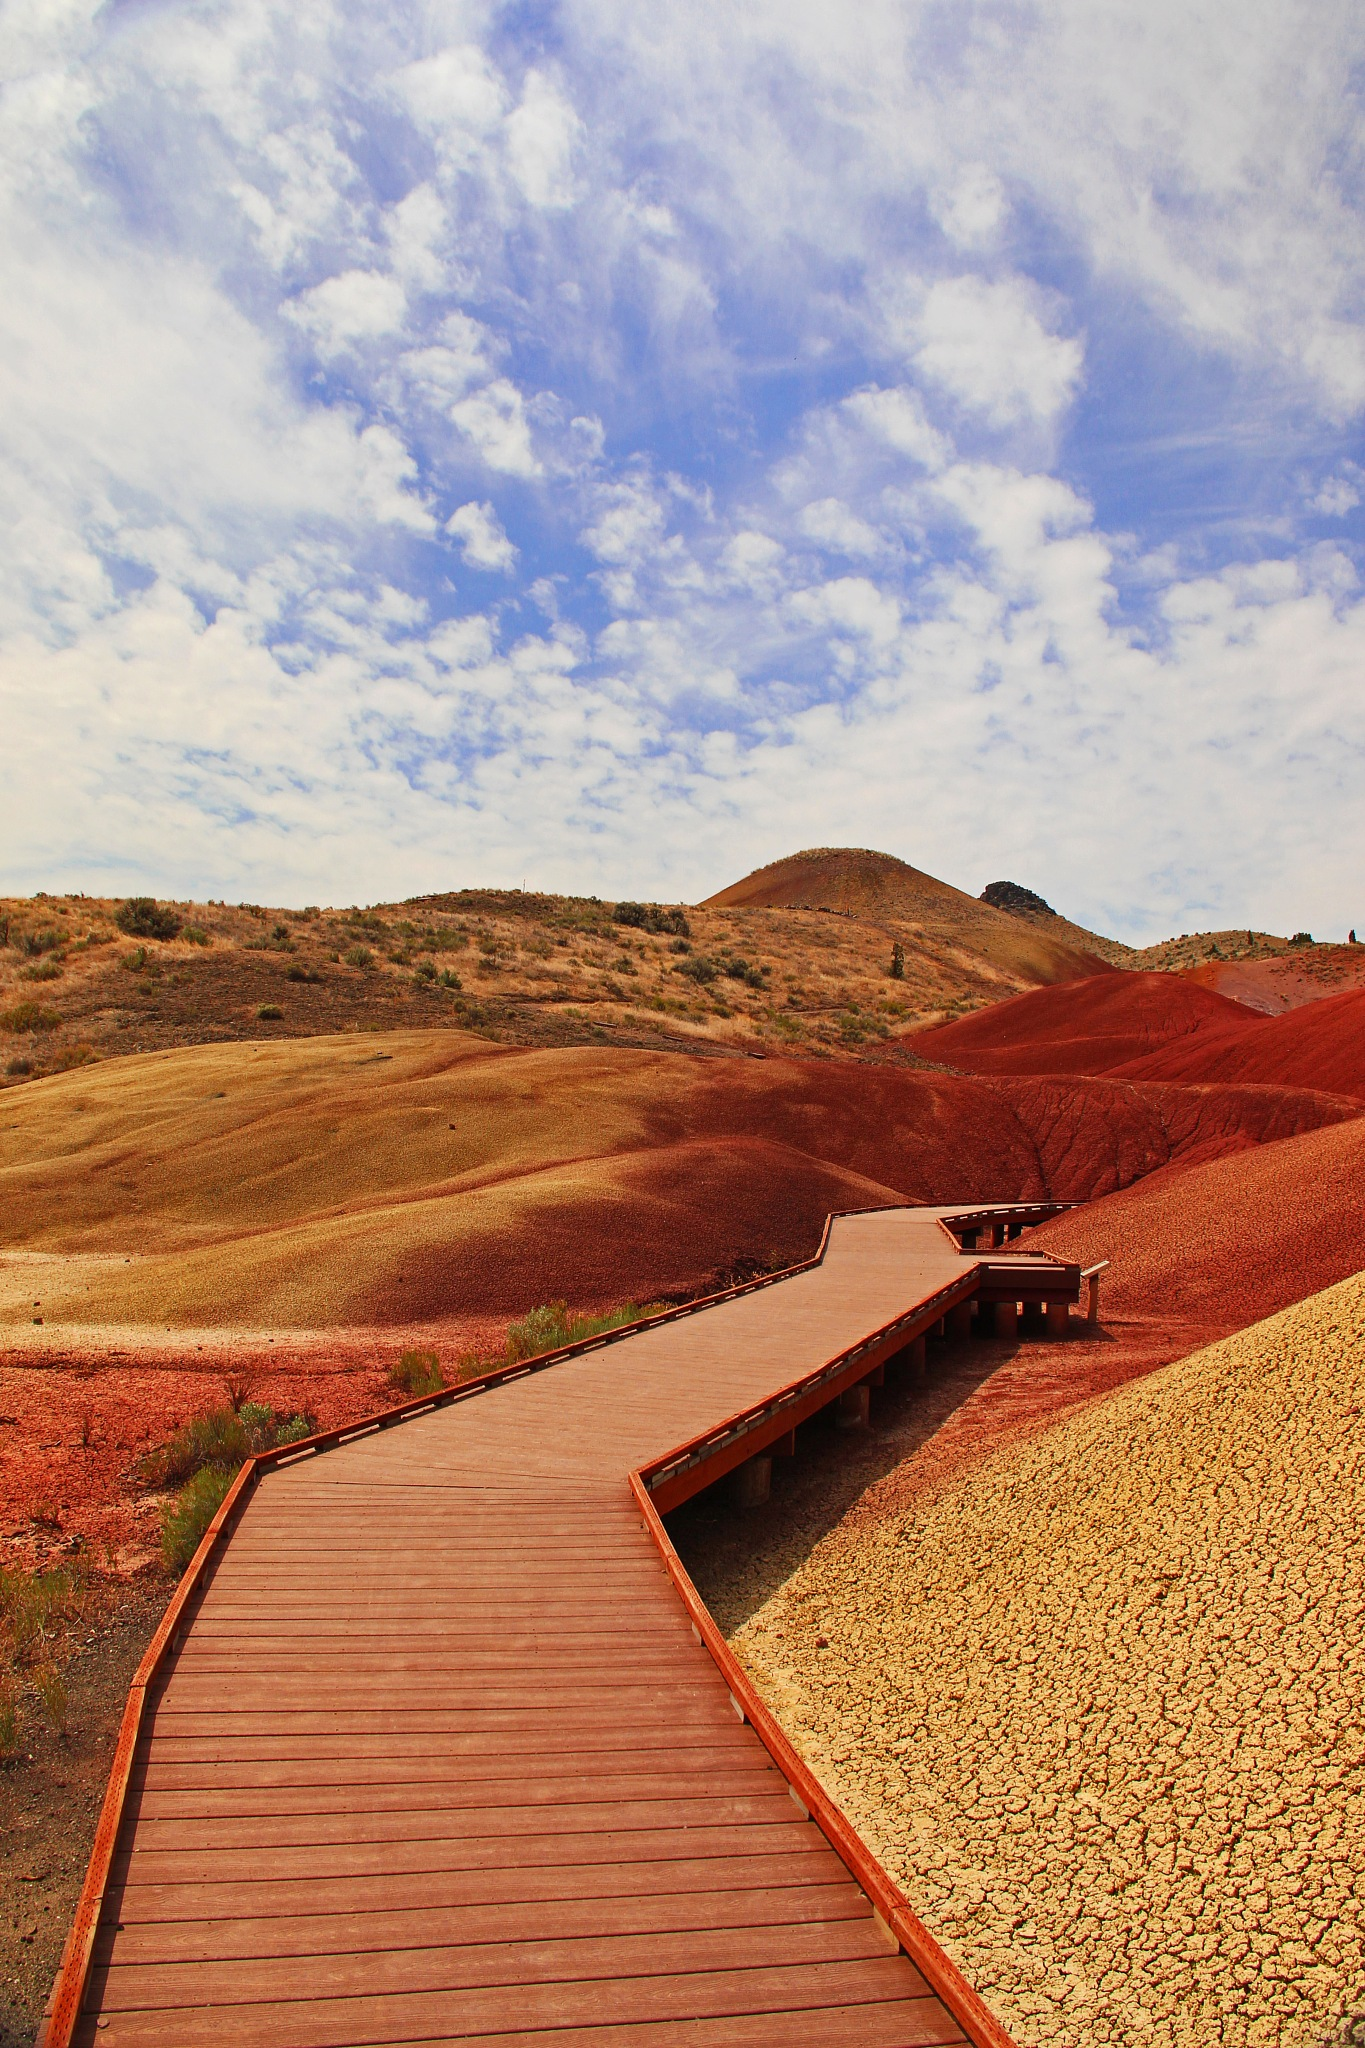 Painted Hills, Painted Cove by christena.anderson